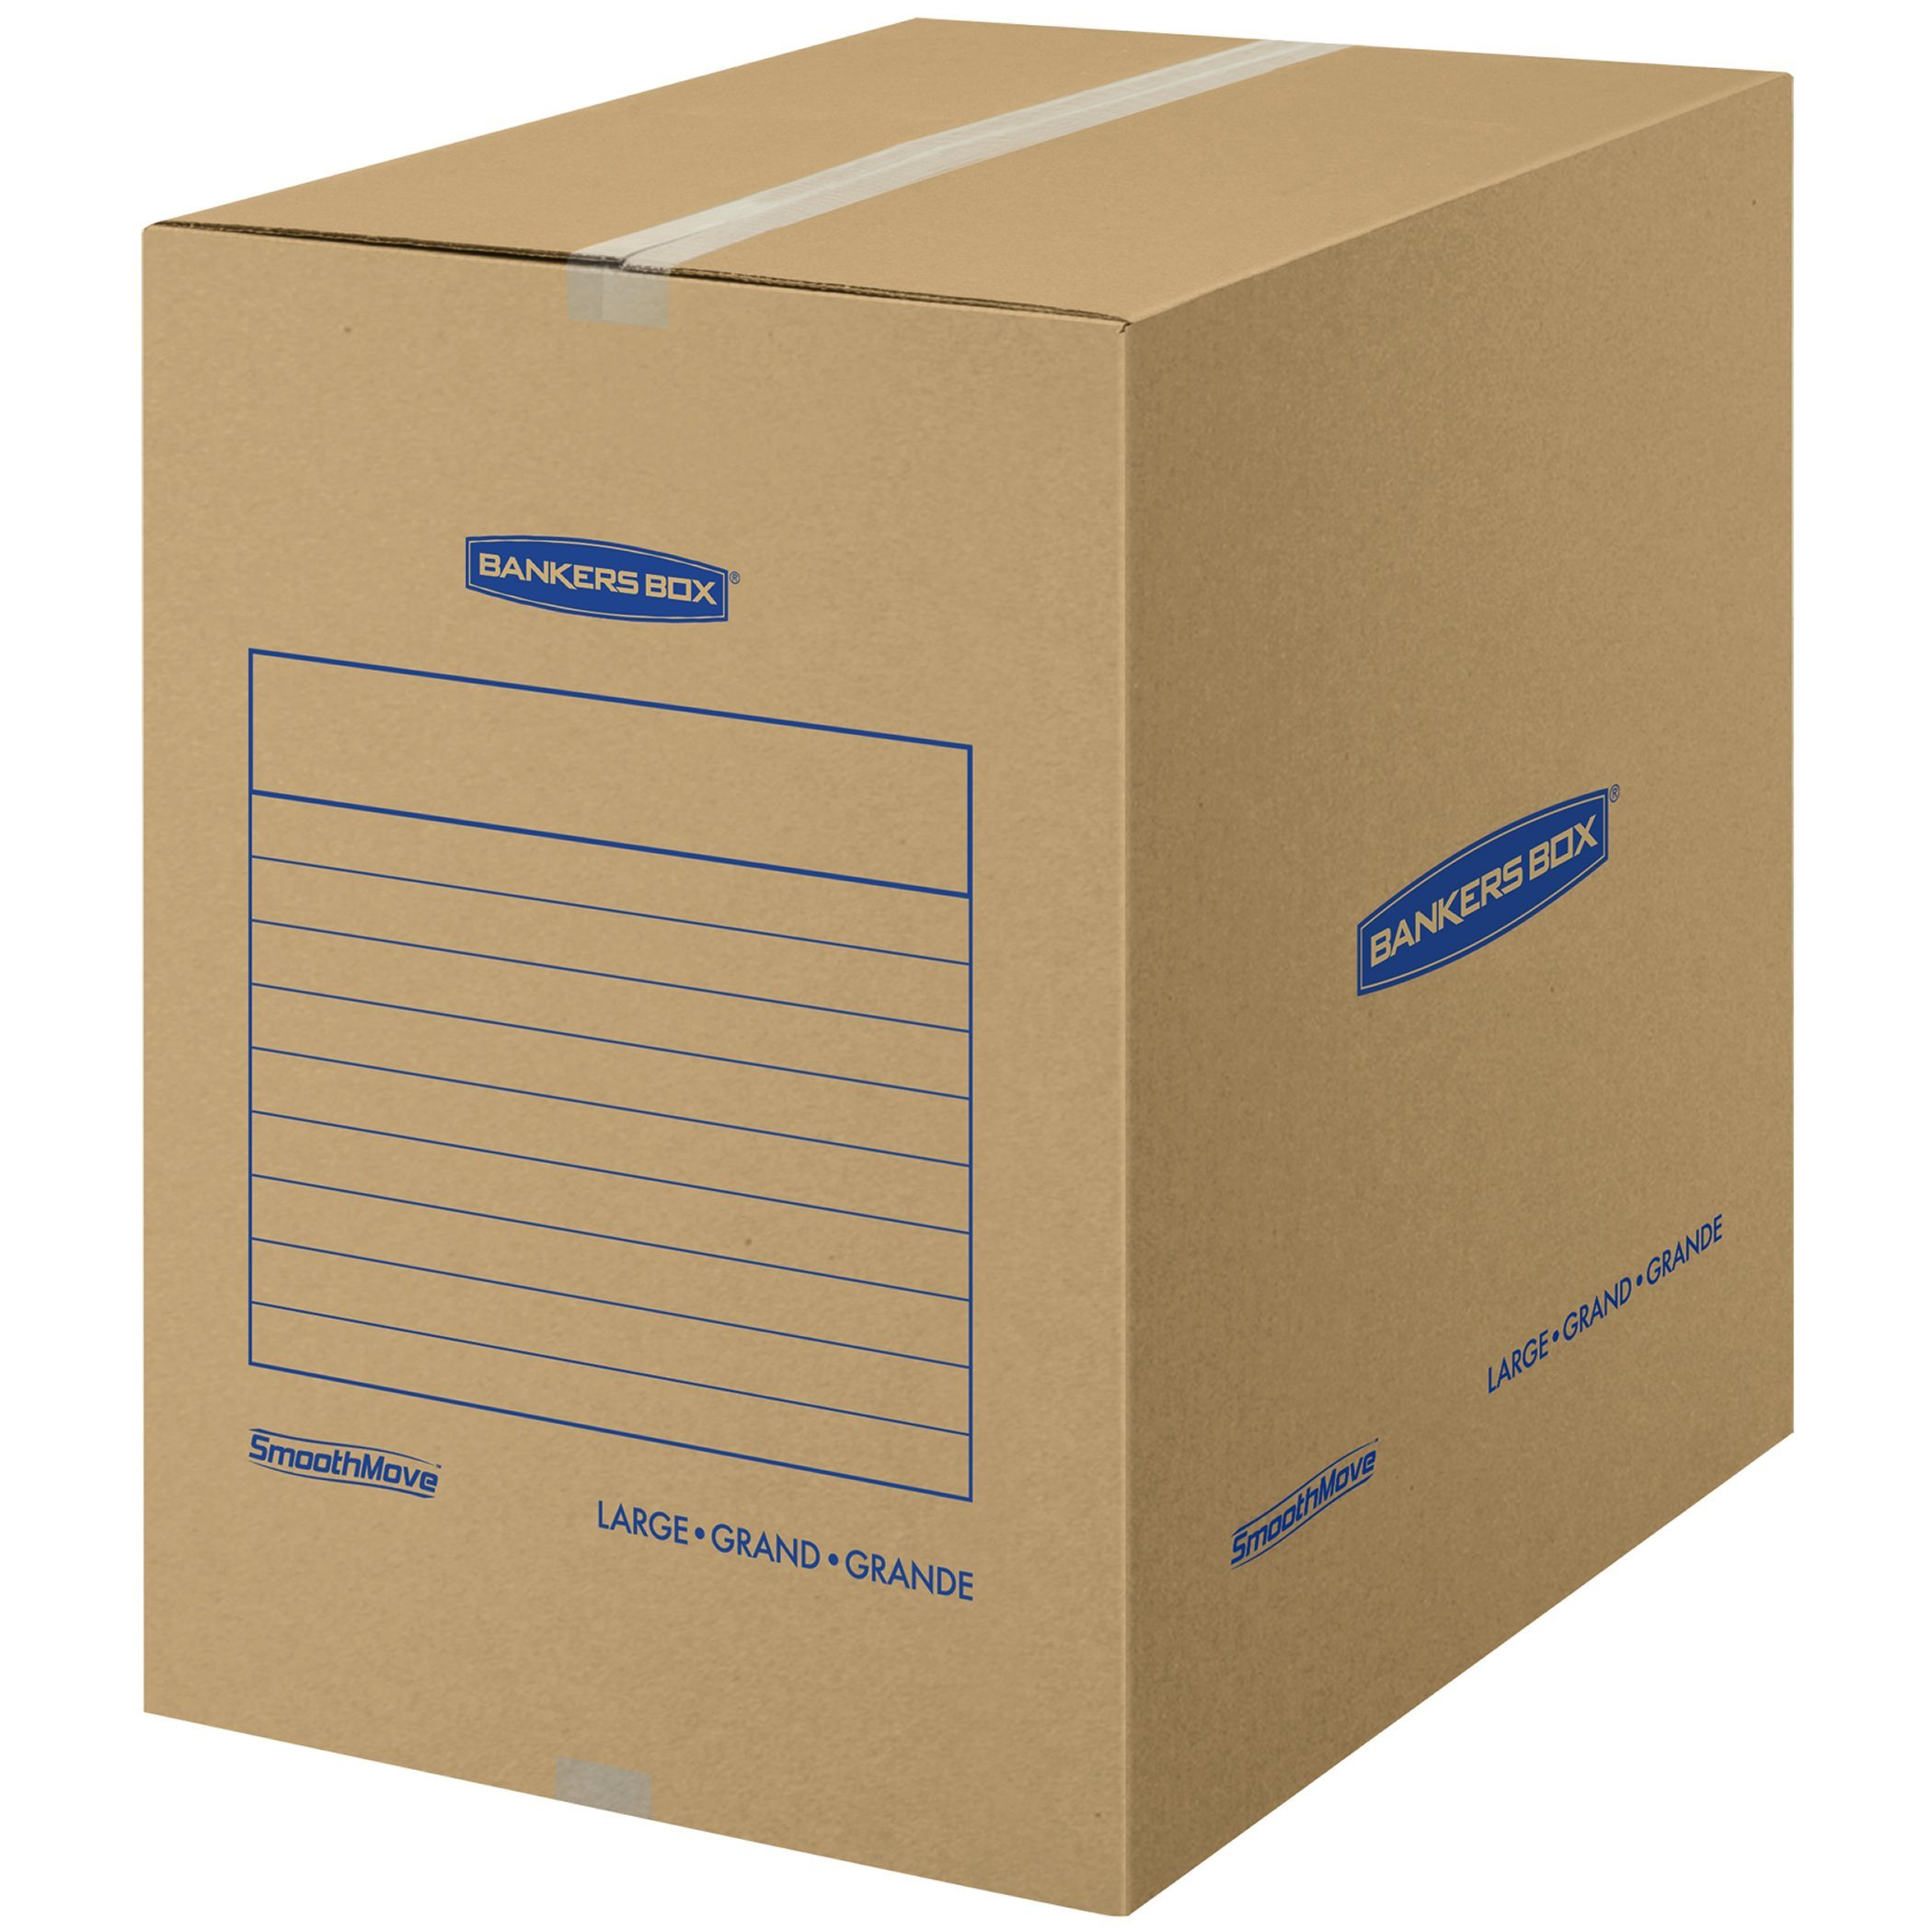 Bankers Box SmoothMove Basic Moving Boxes, Large, 18 x 18 x 24 Inches, 7 Pack (7714002)